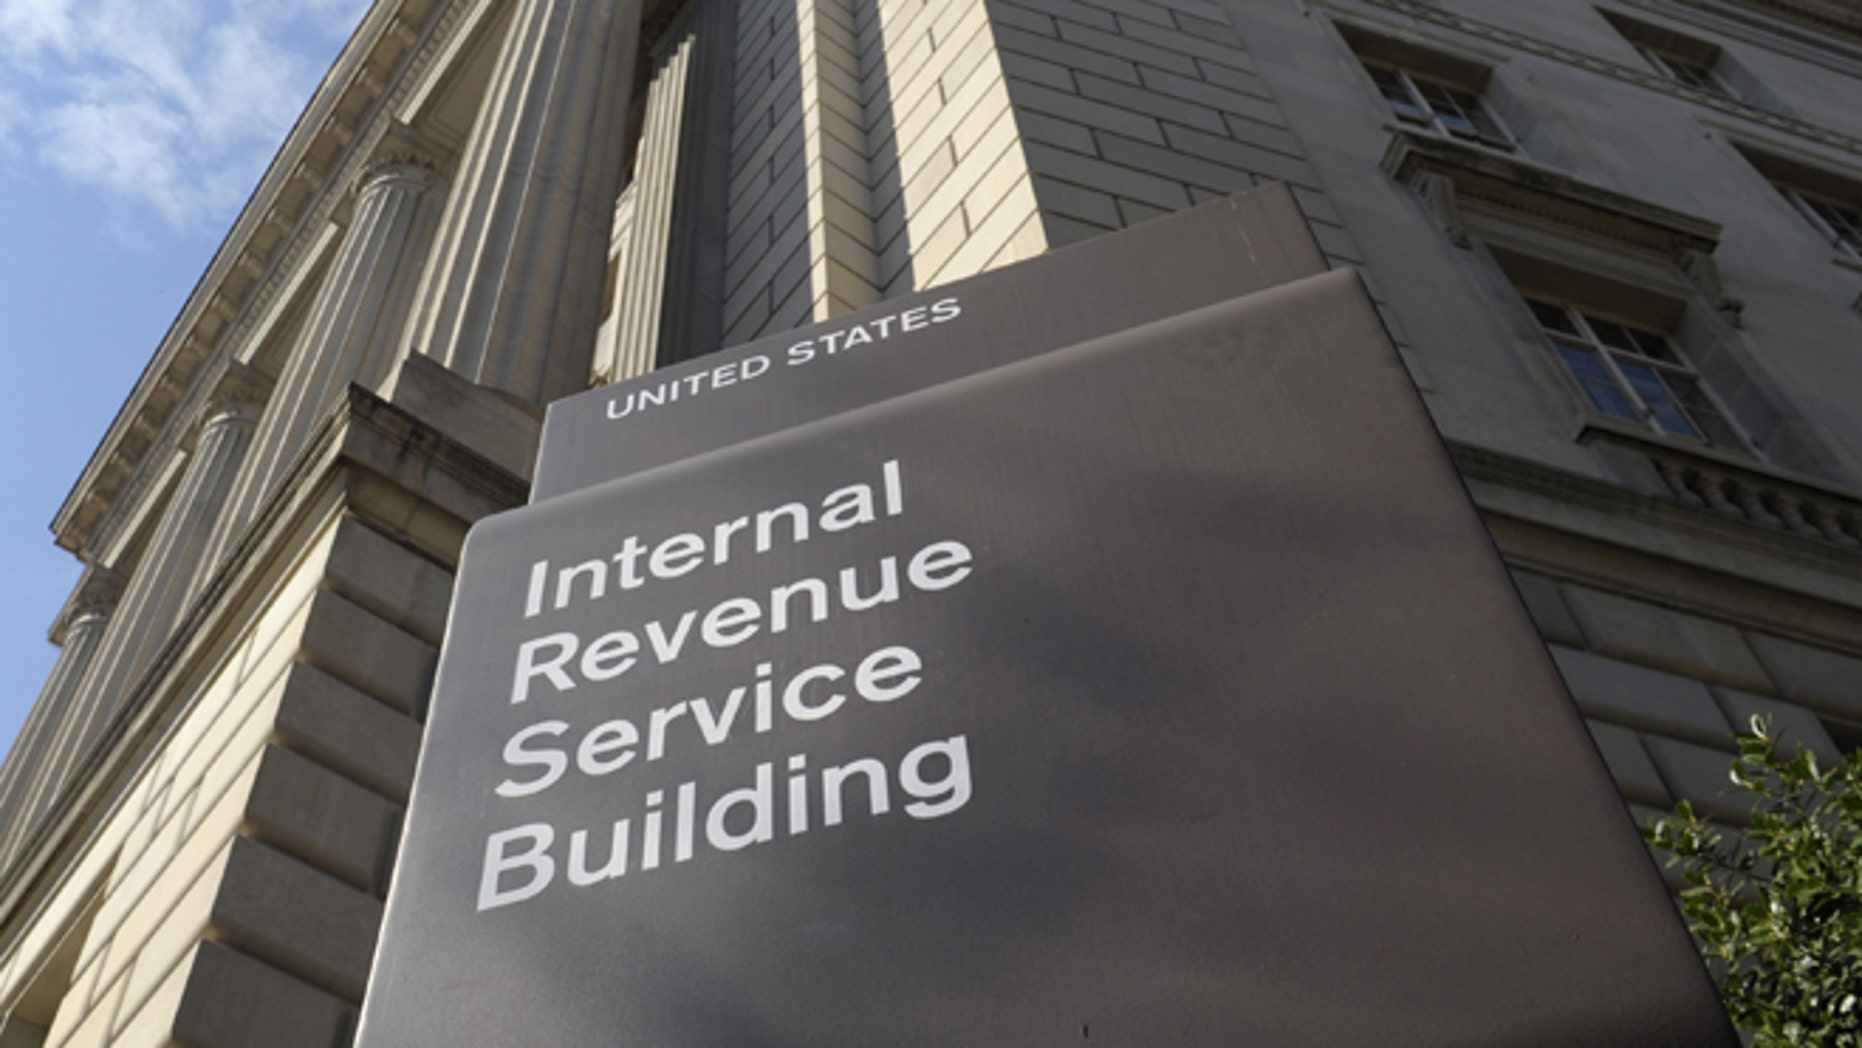 In this March 22, 2103 file photo, the exterior of the Internal Revenue Service (IRS) building is seen in Washington.